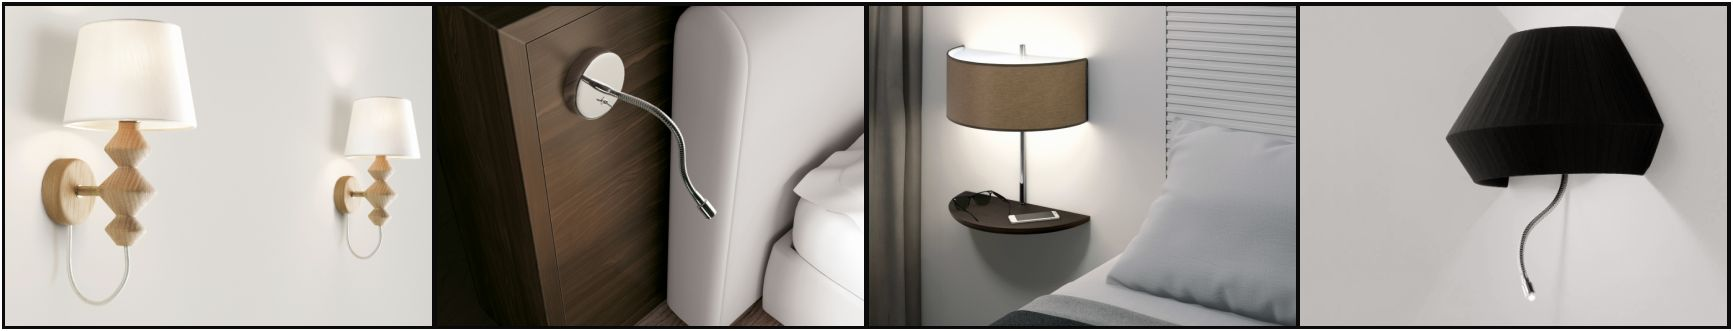 Exclusive wall lamps used as bedside lamps above the bed